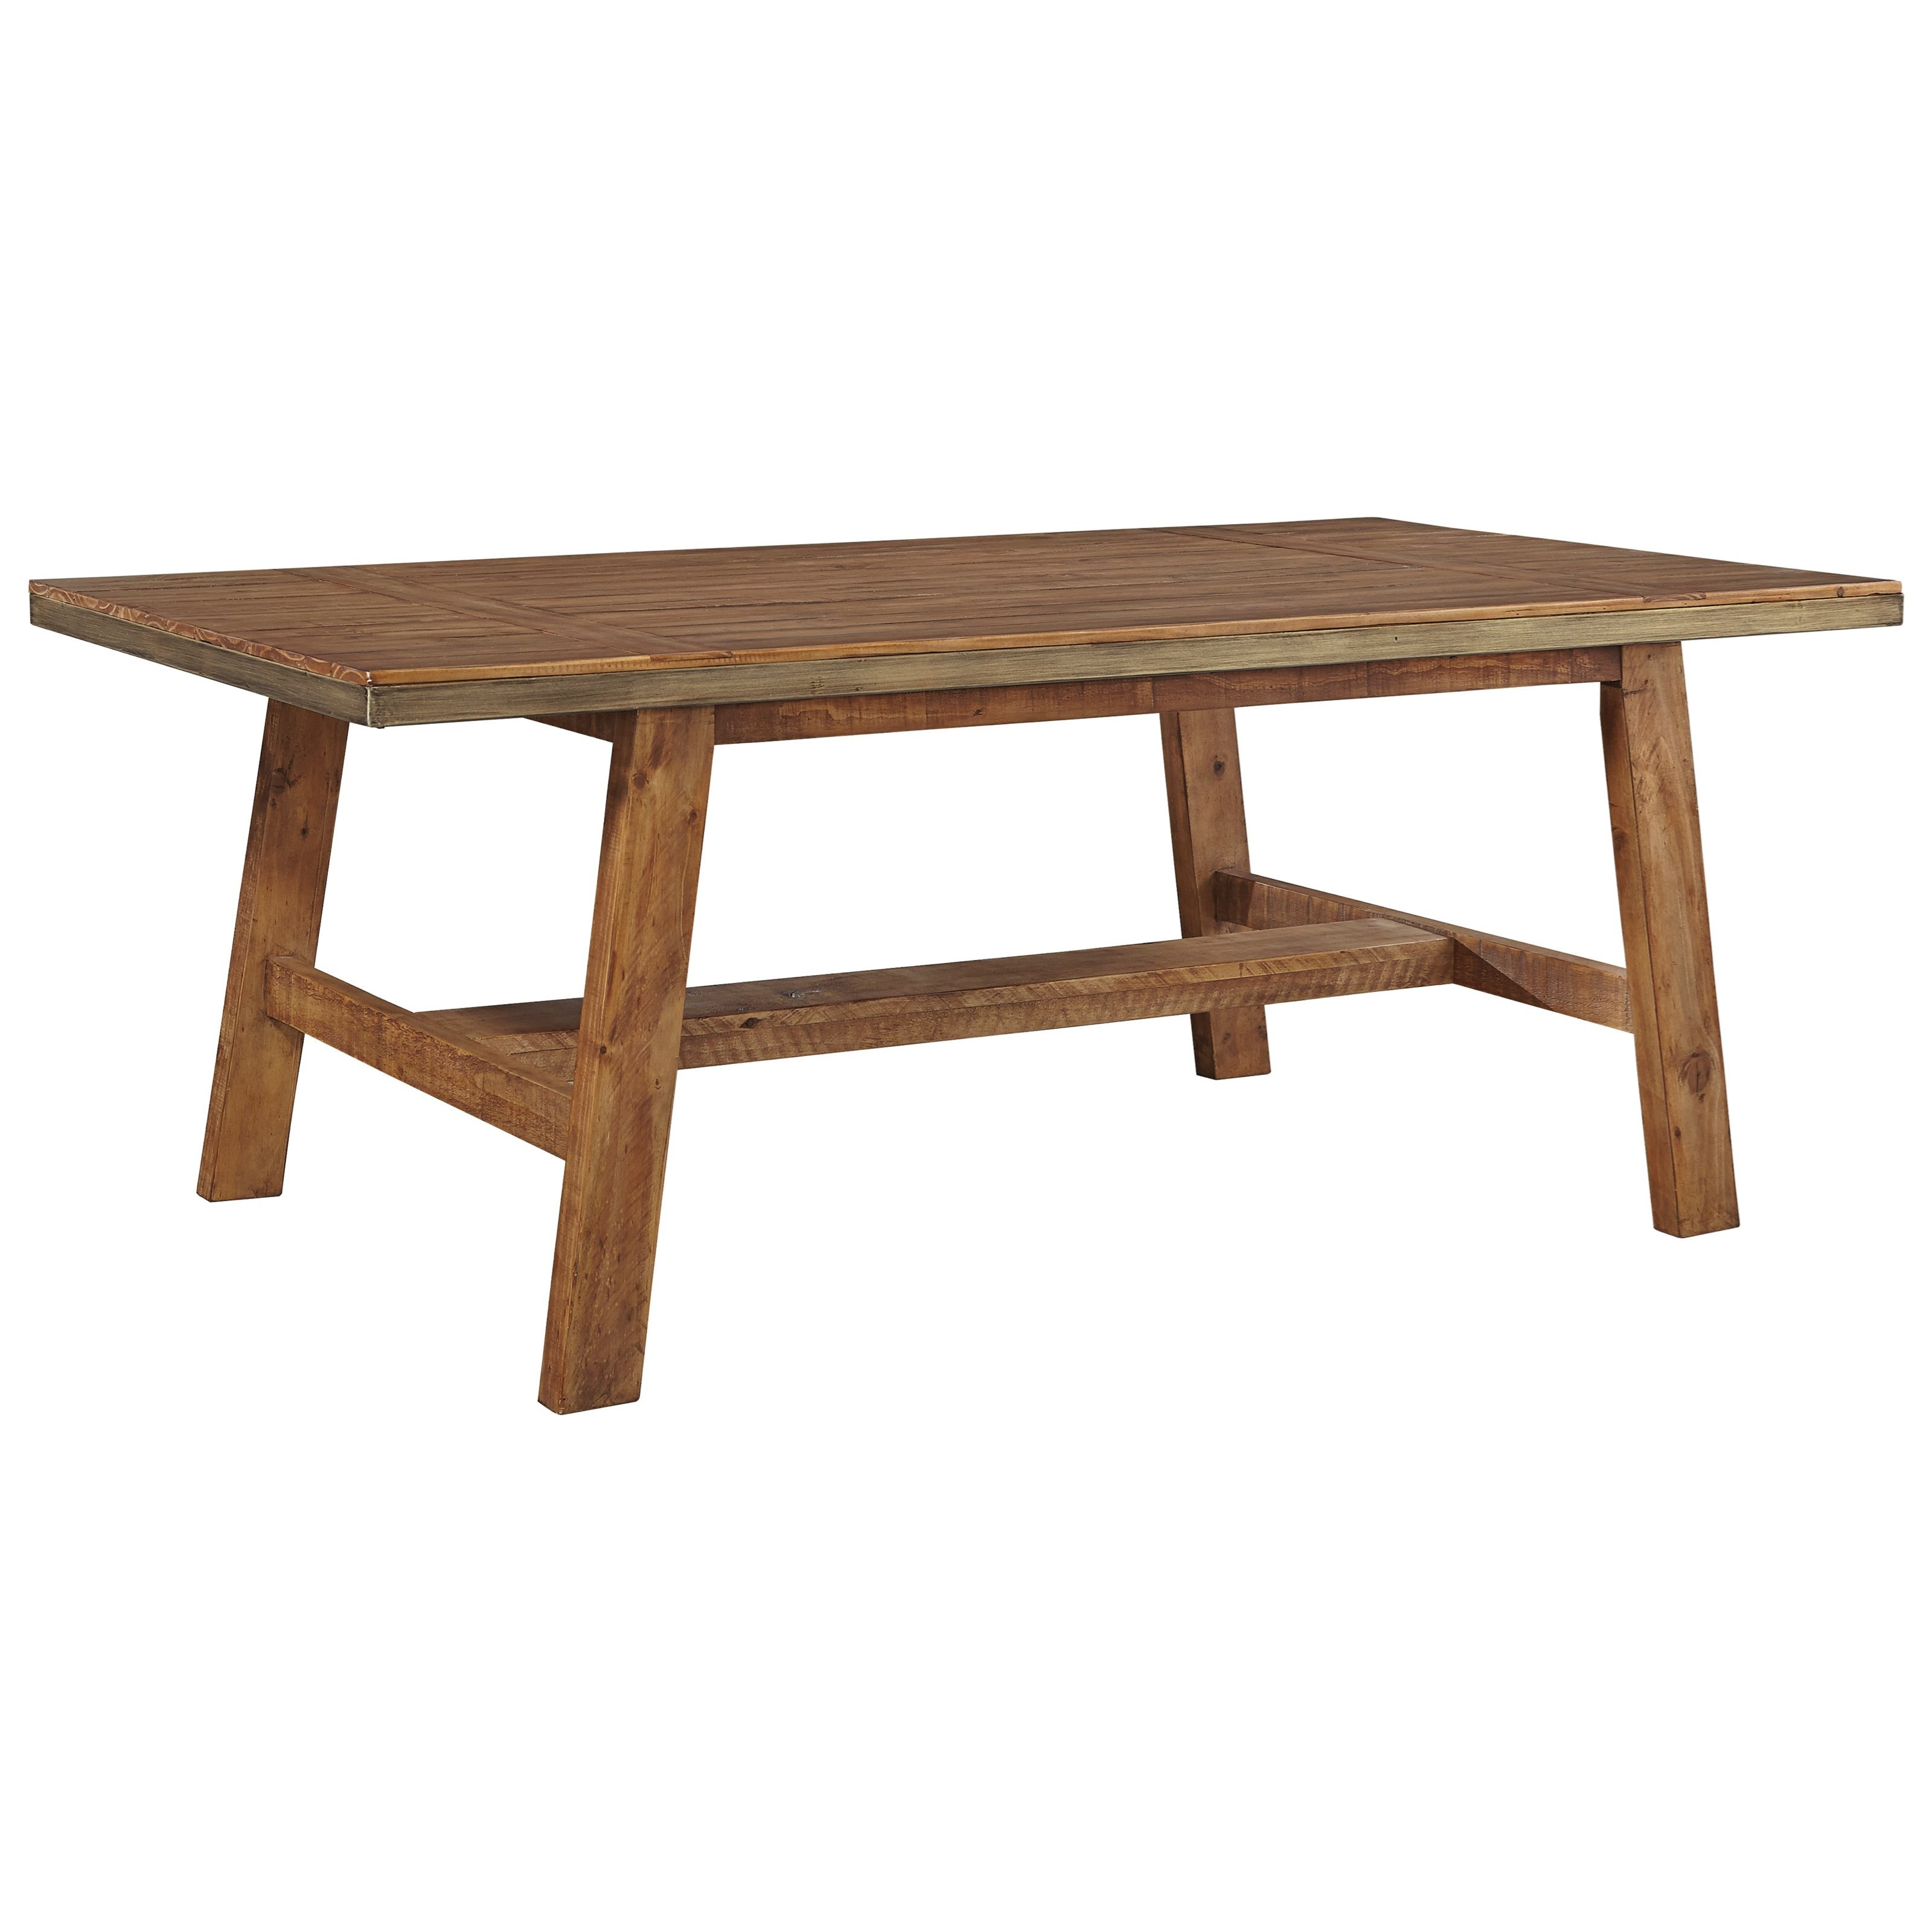 Signature Design by Ashley Dondie Rectangular Dining Room Table - Item Number: D663-25